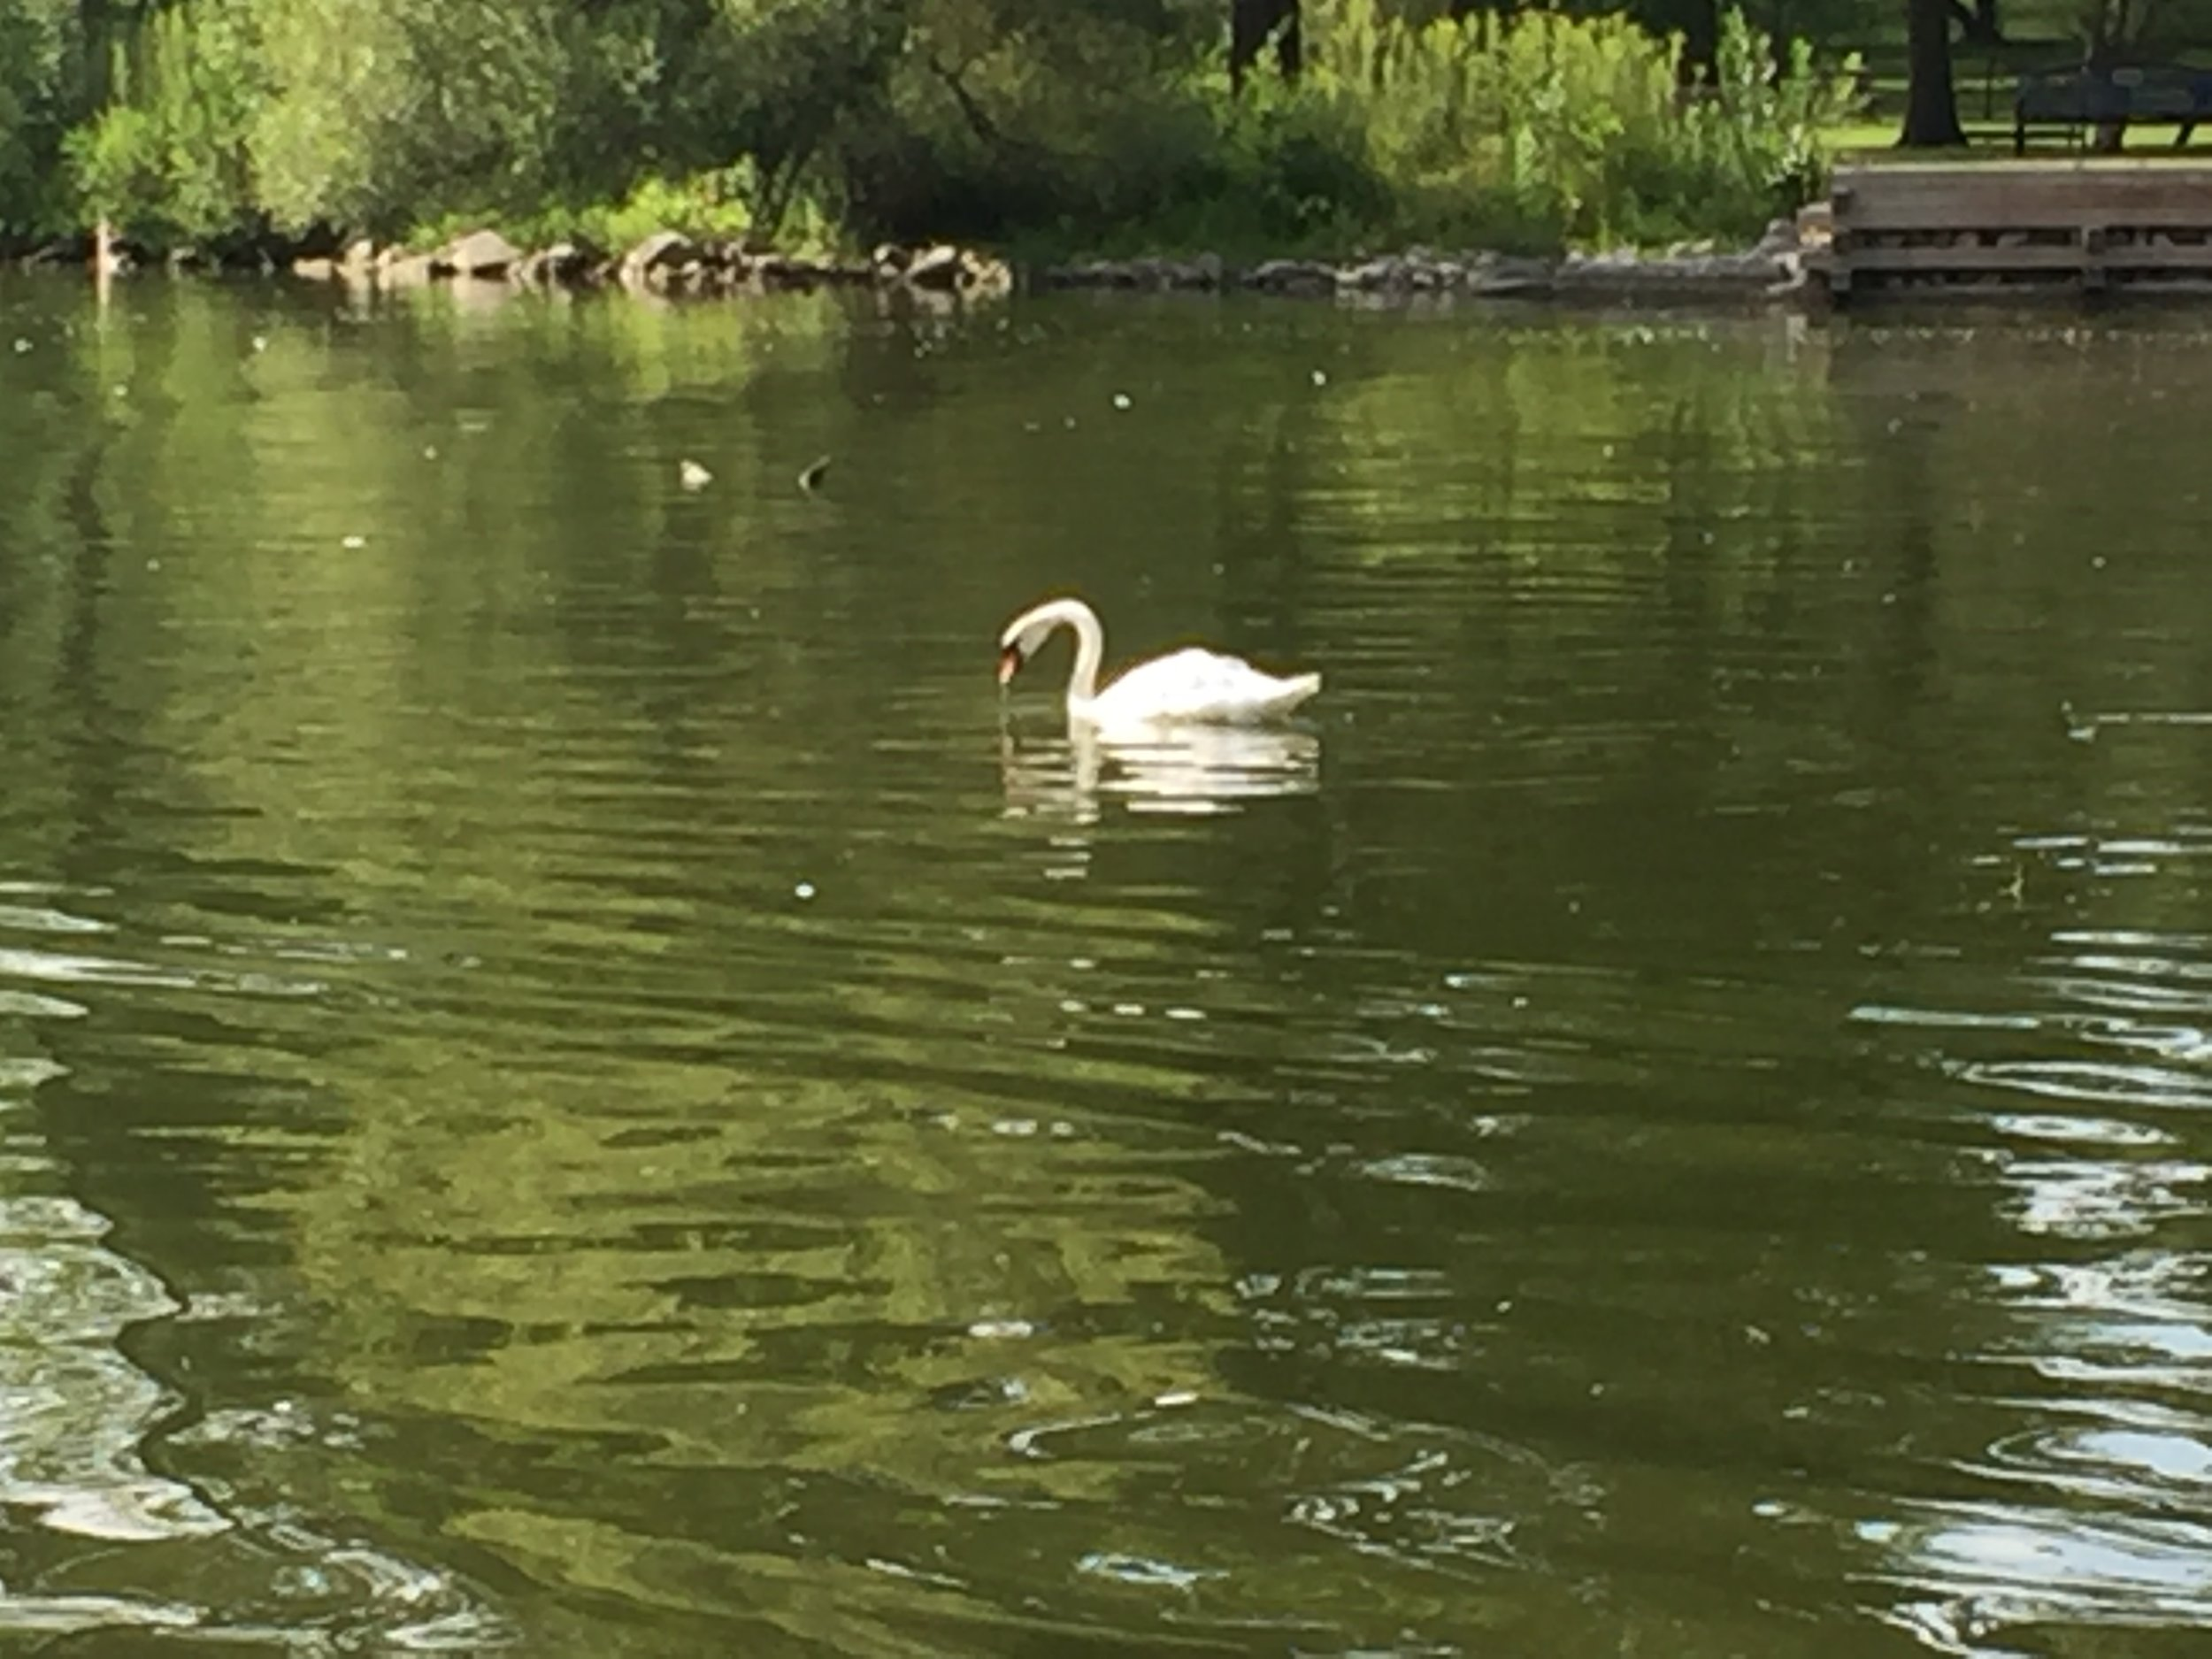 [image description: A large white swan with a black and orange bill swimming along the river.]